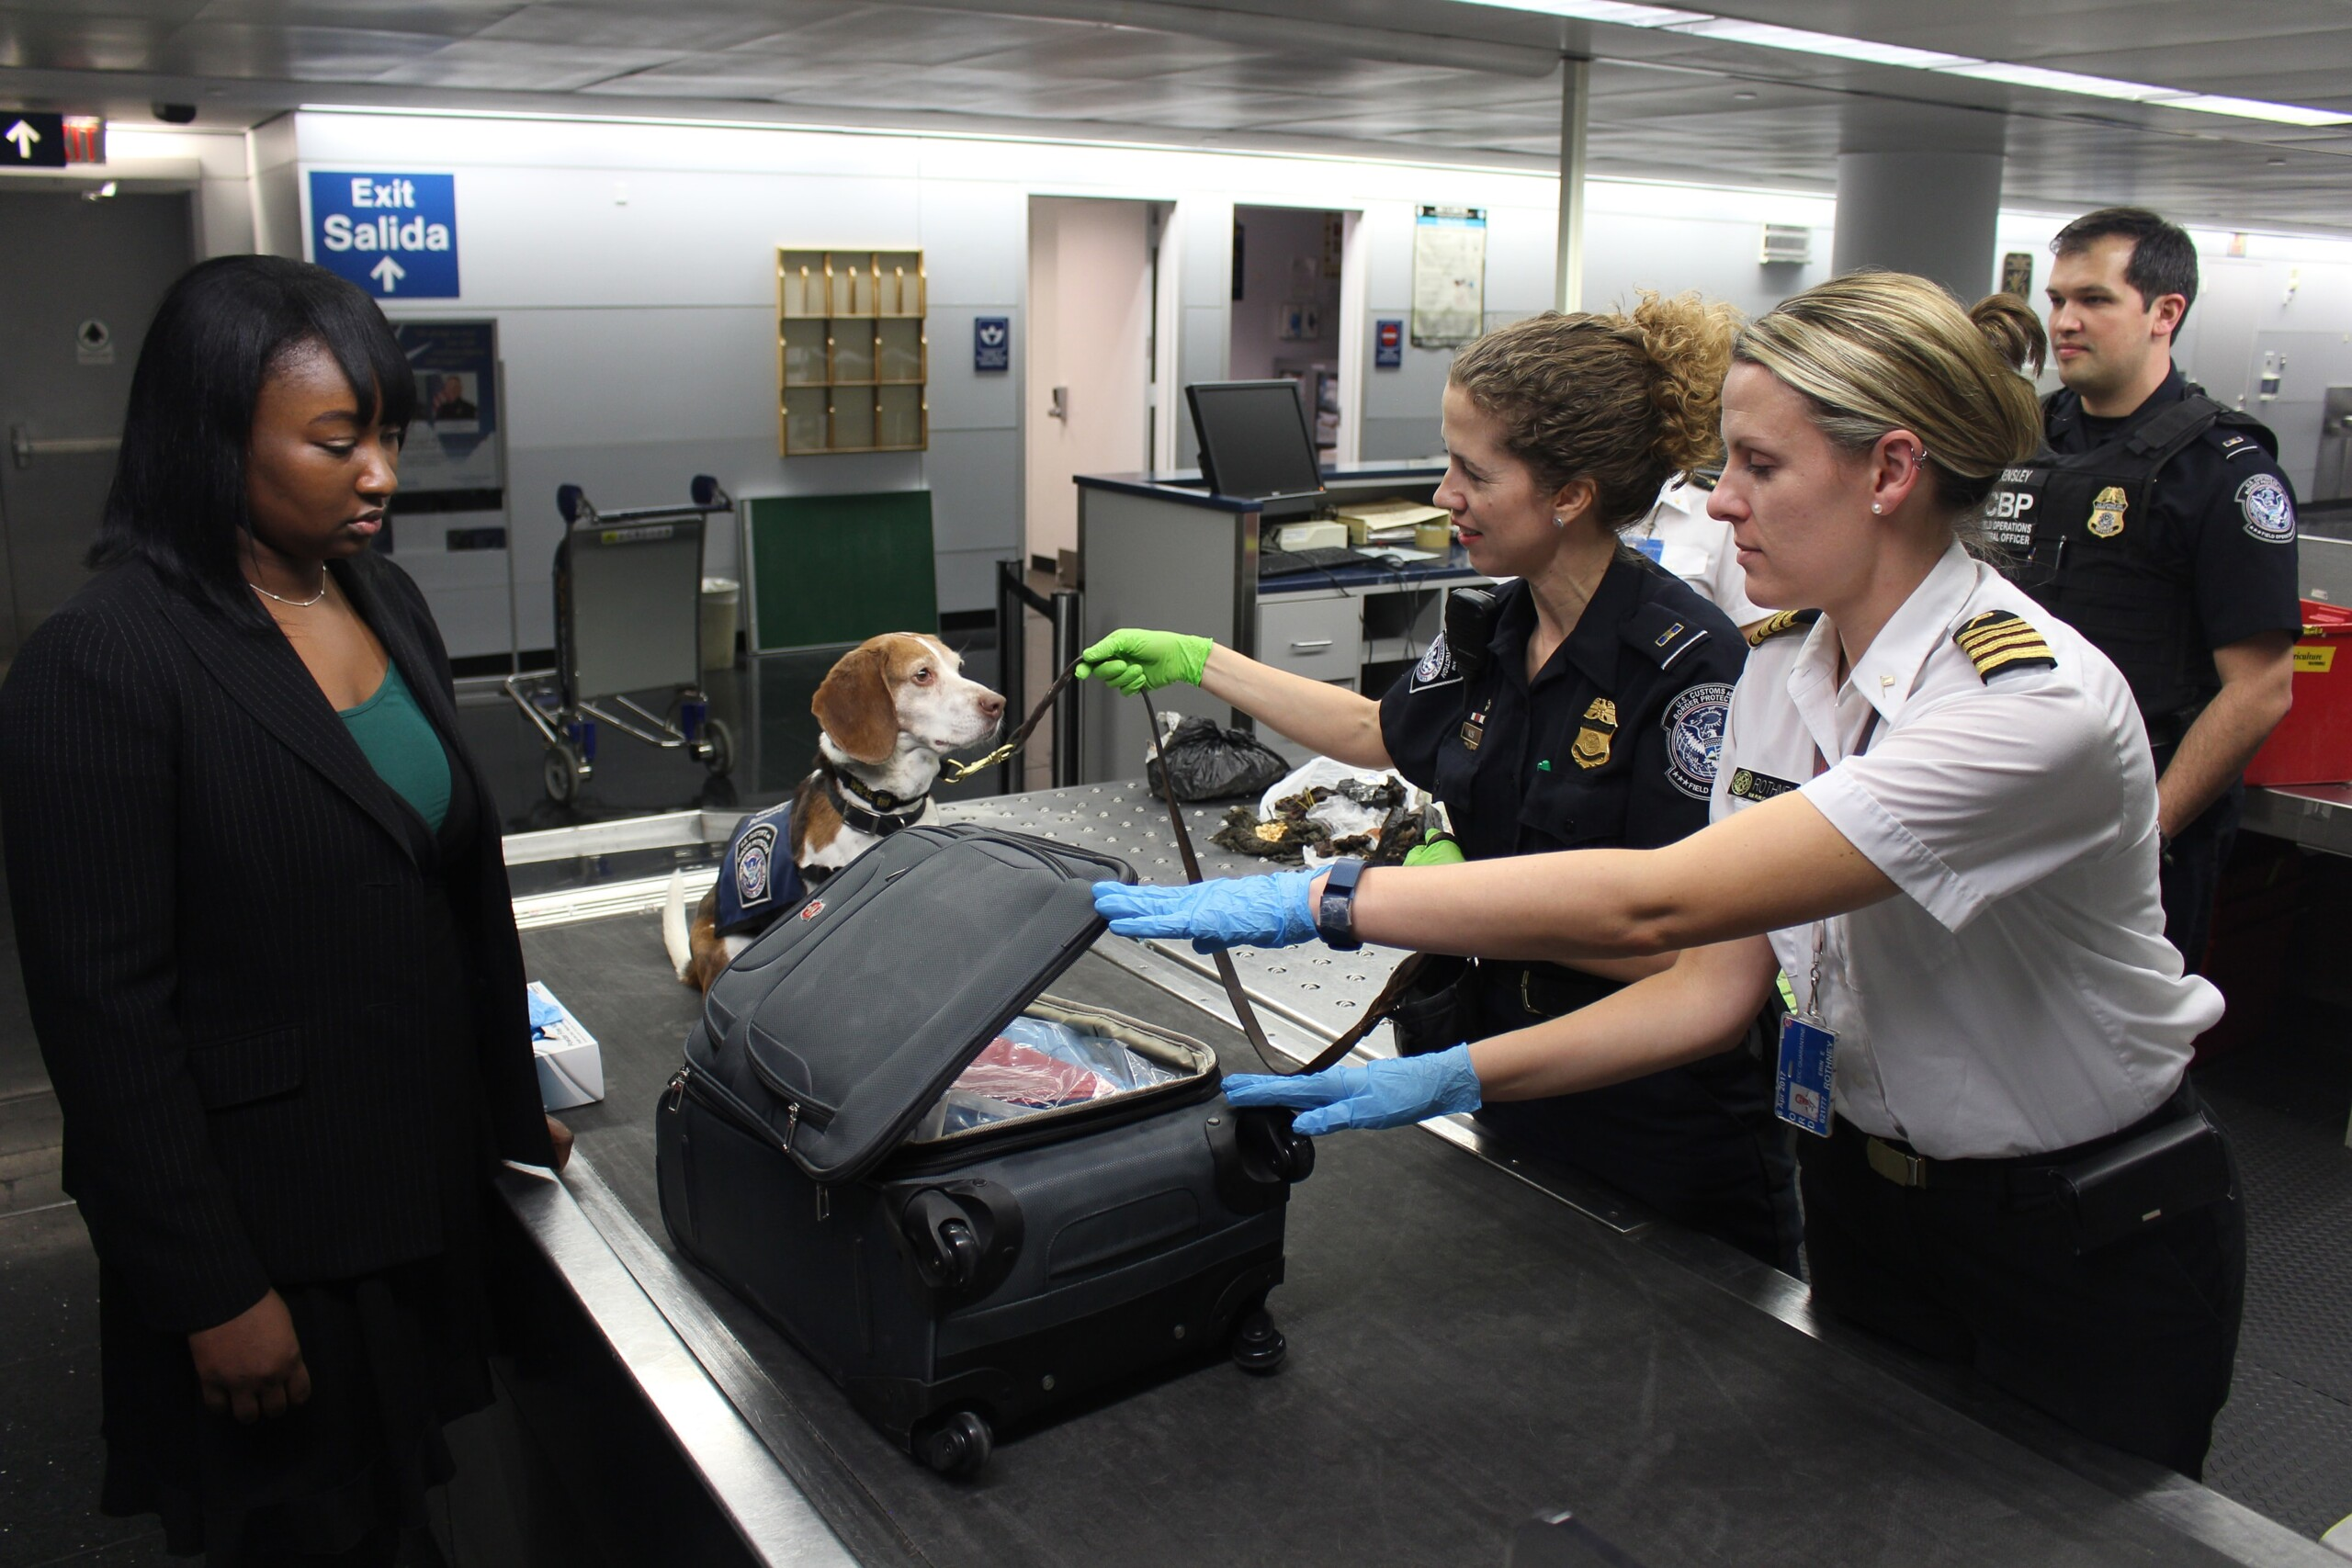 A Dog at a Travel Check-in Point